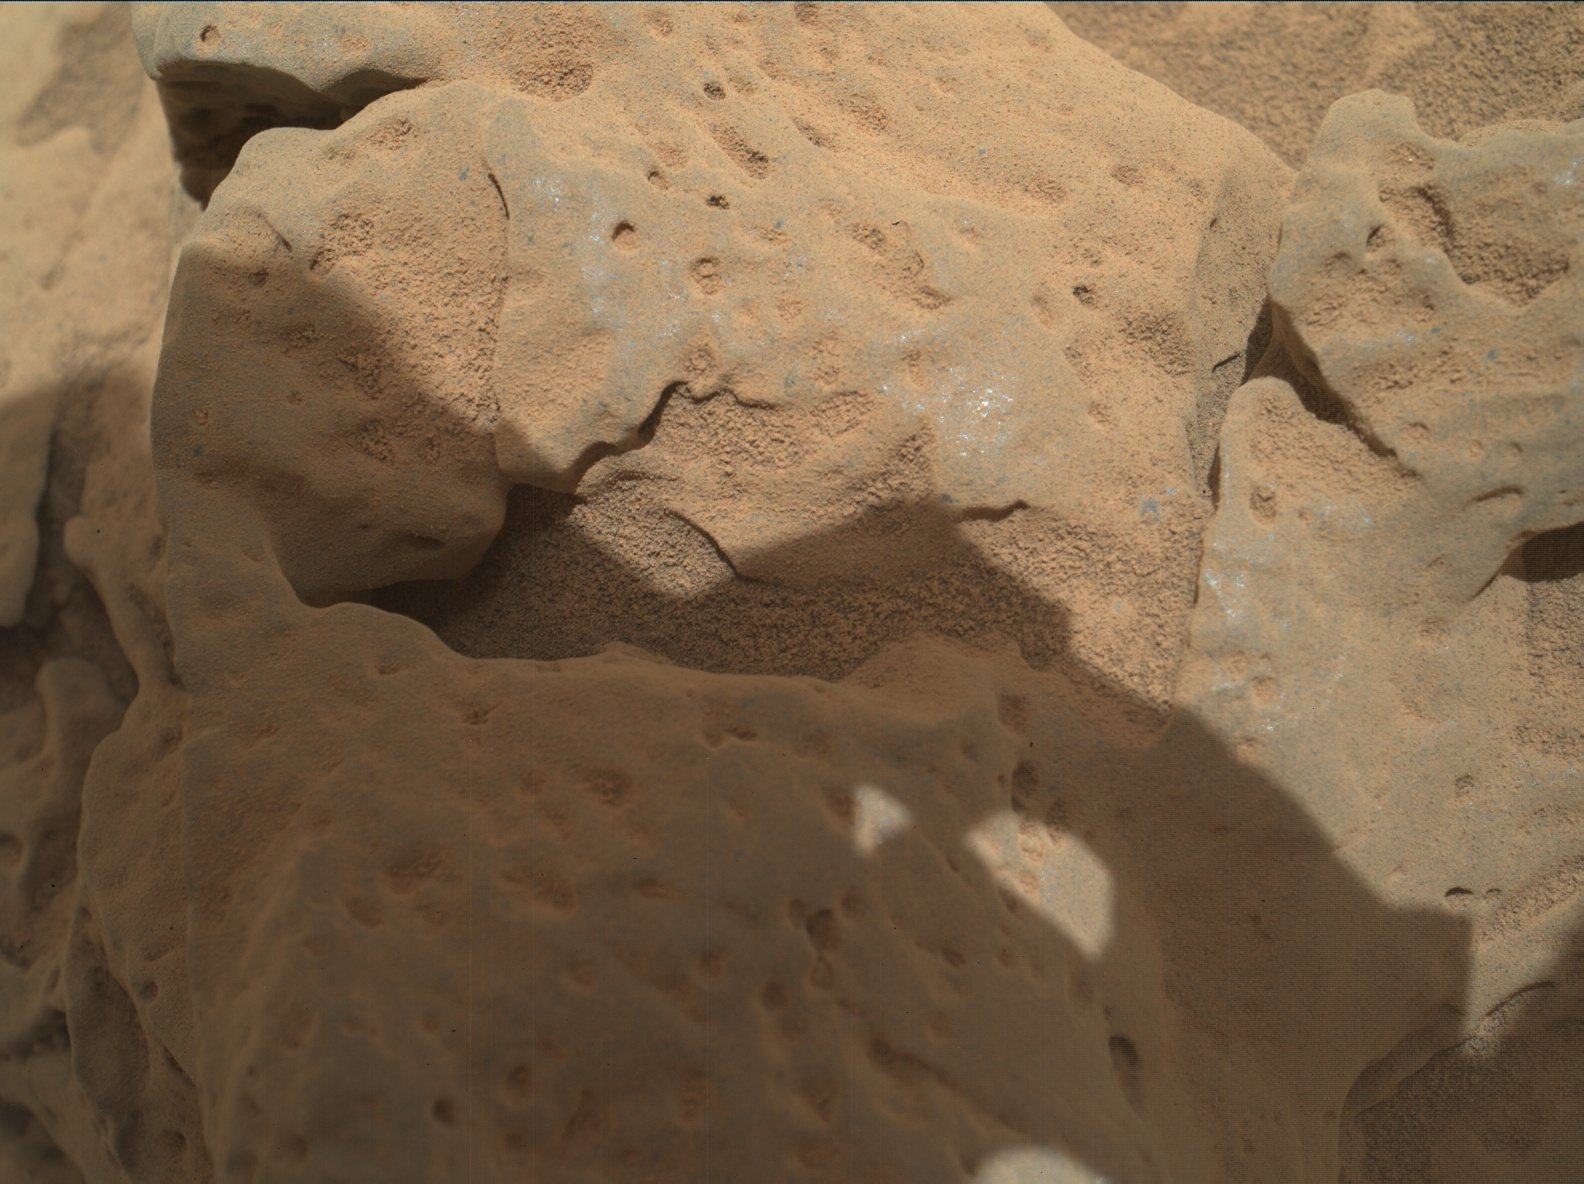 Nasa's Mars rover Curiosity acquired this image using its Mars Hand Lens Imager (MAHLI) on Sol 82